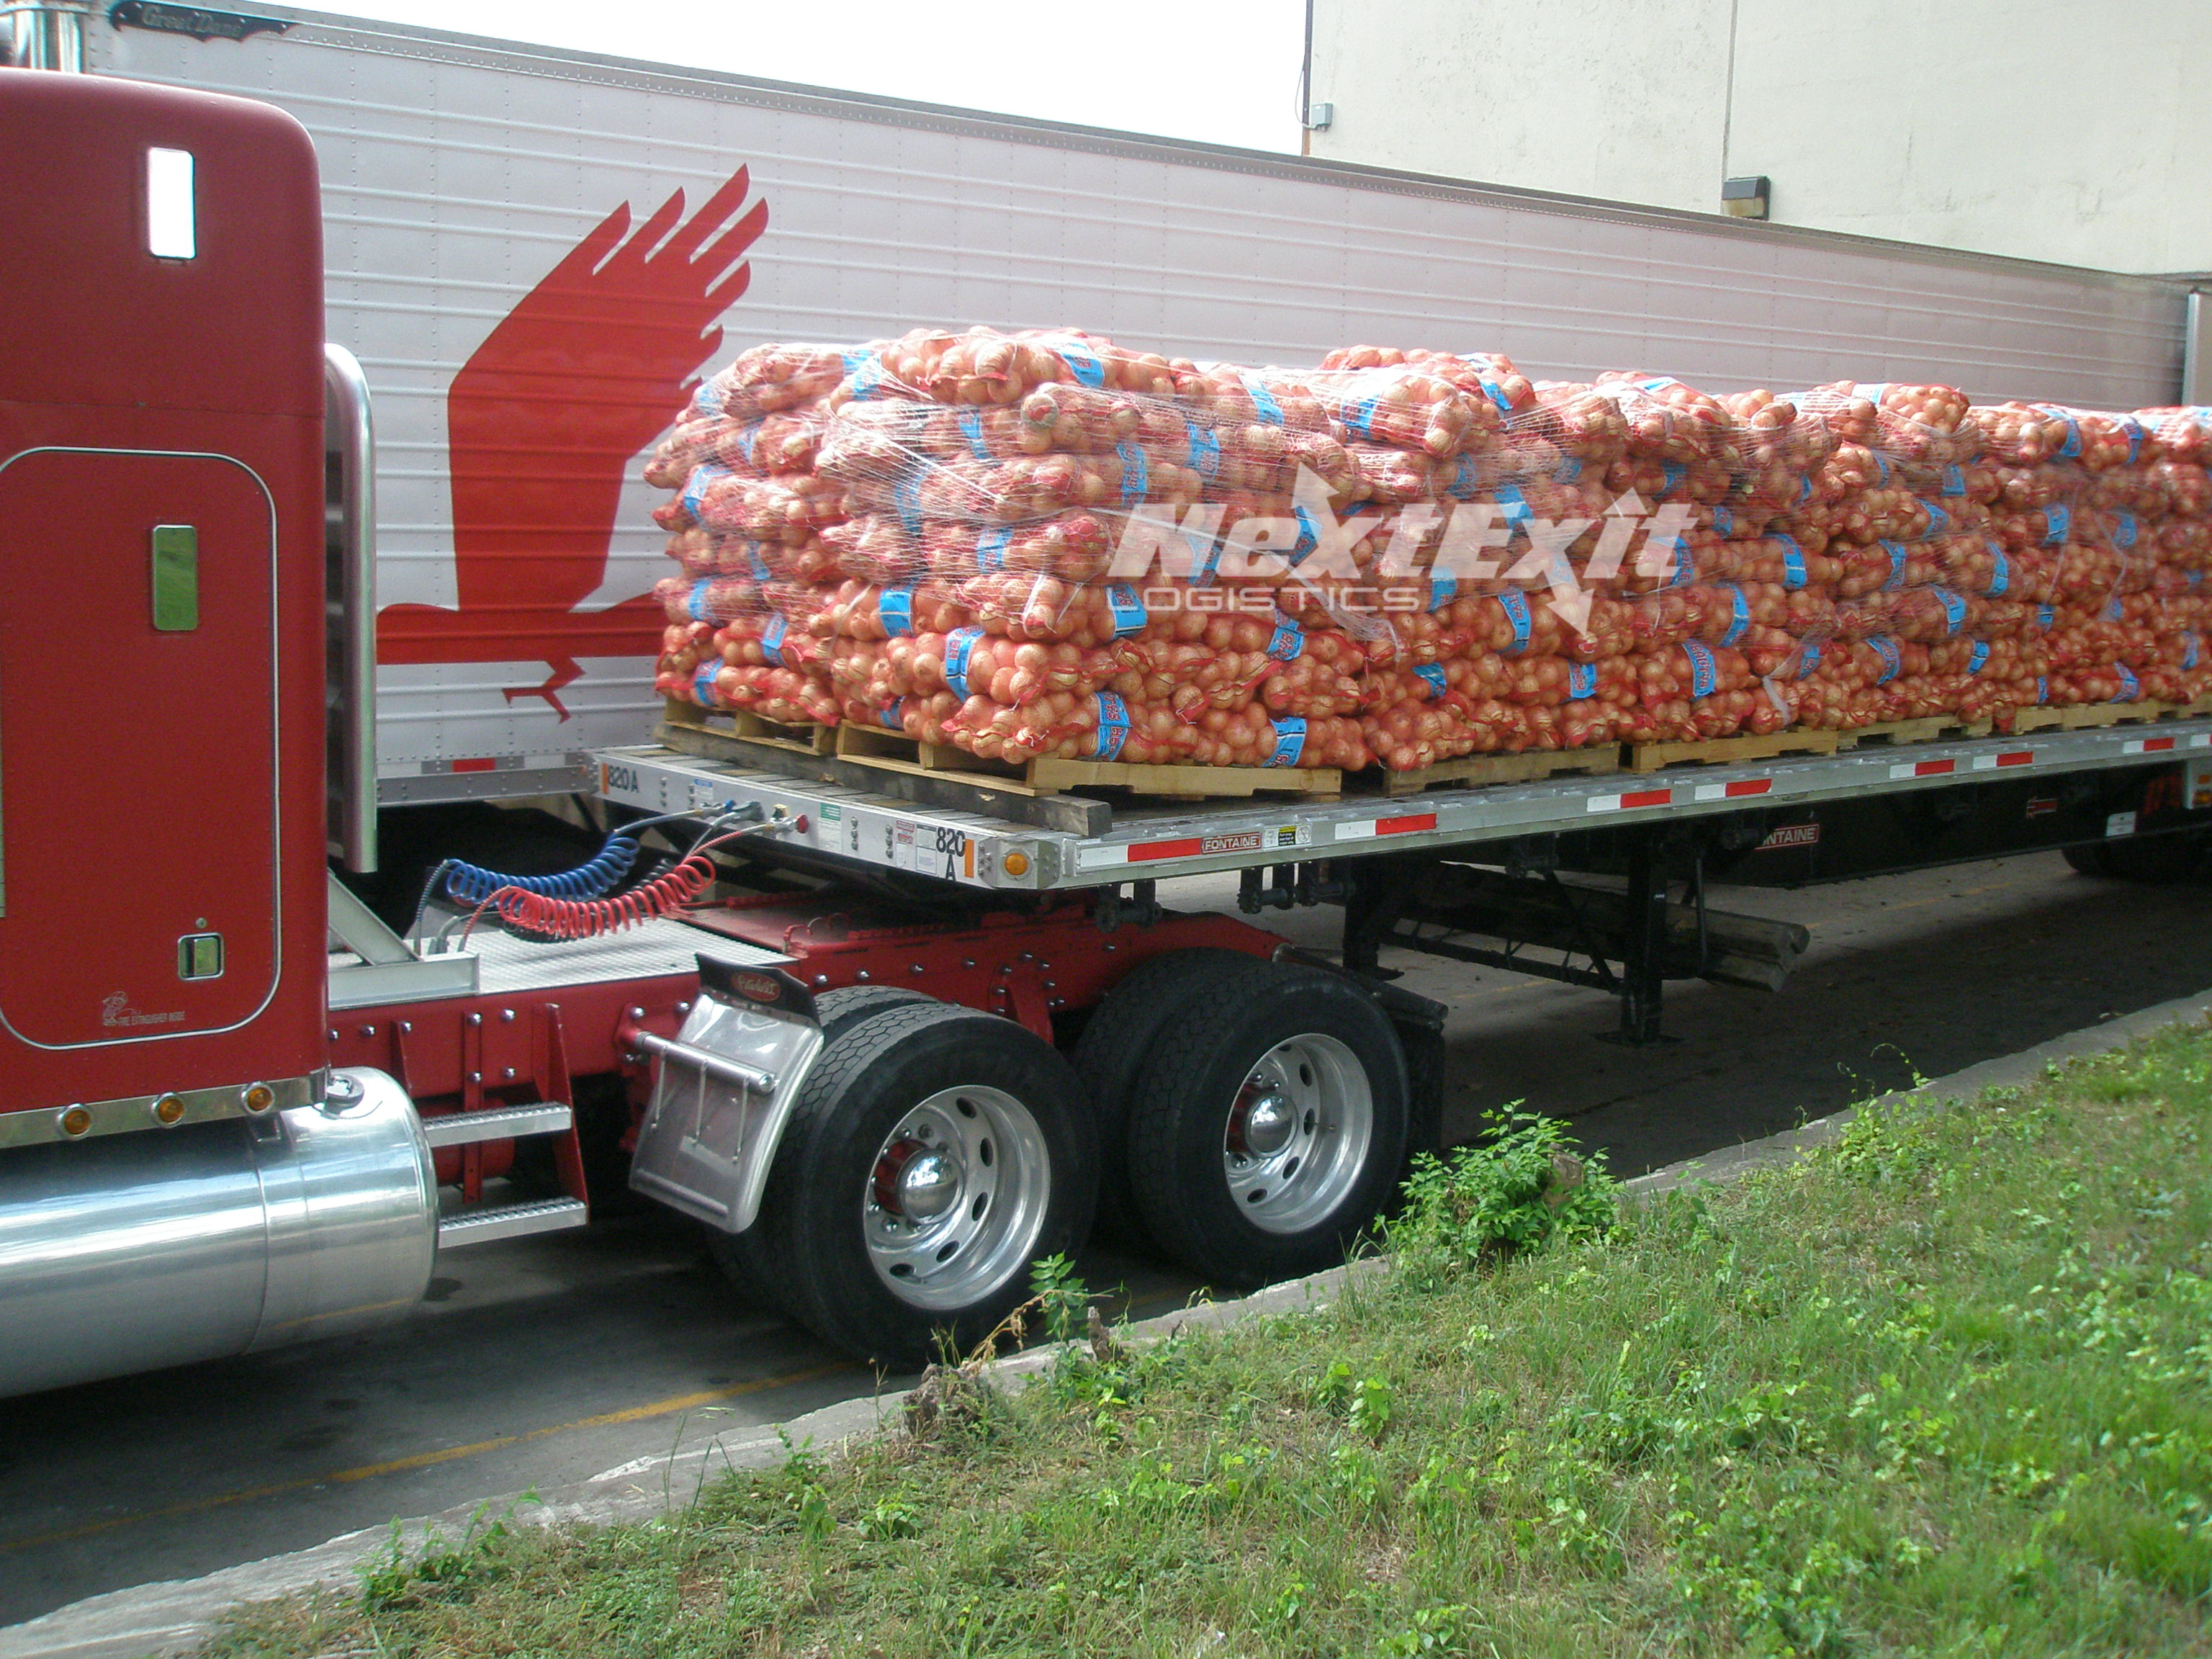 48' Flatbed loaded with 45K pounds of Yellow Onions Hereford to Dallas 5